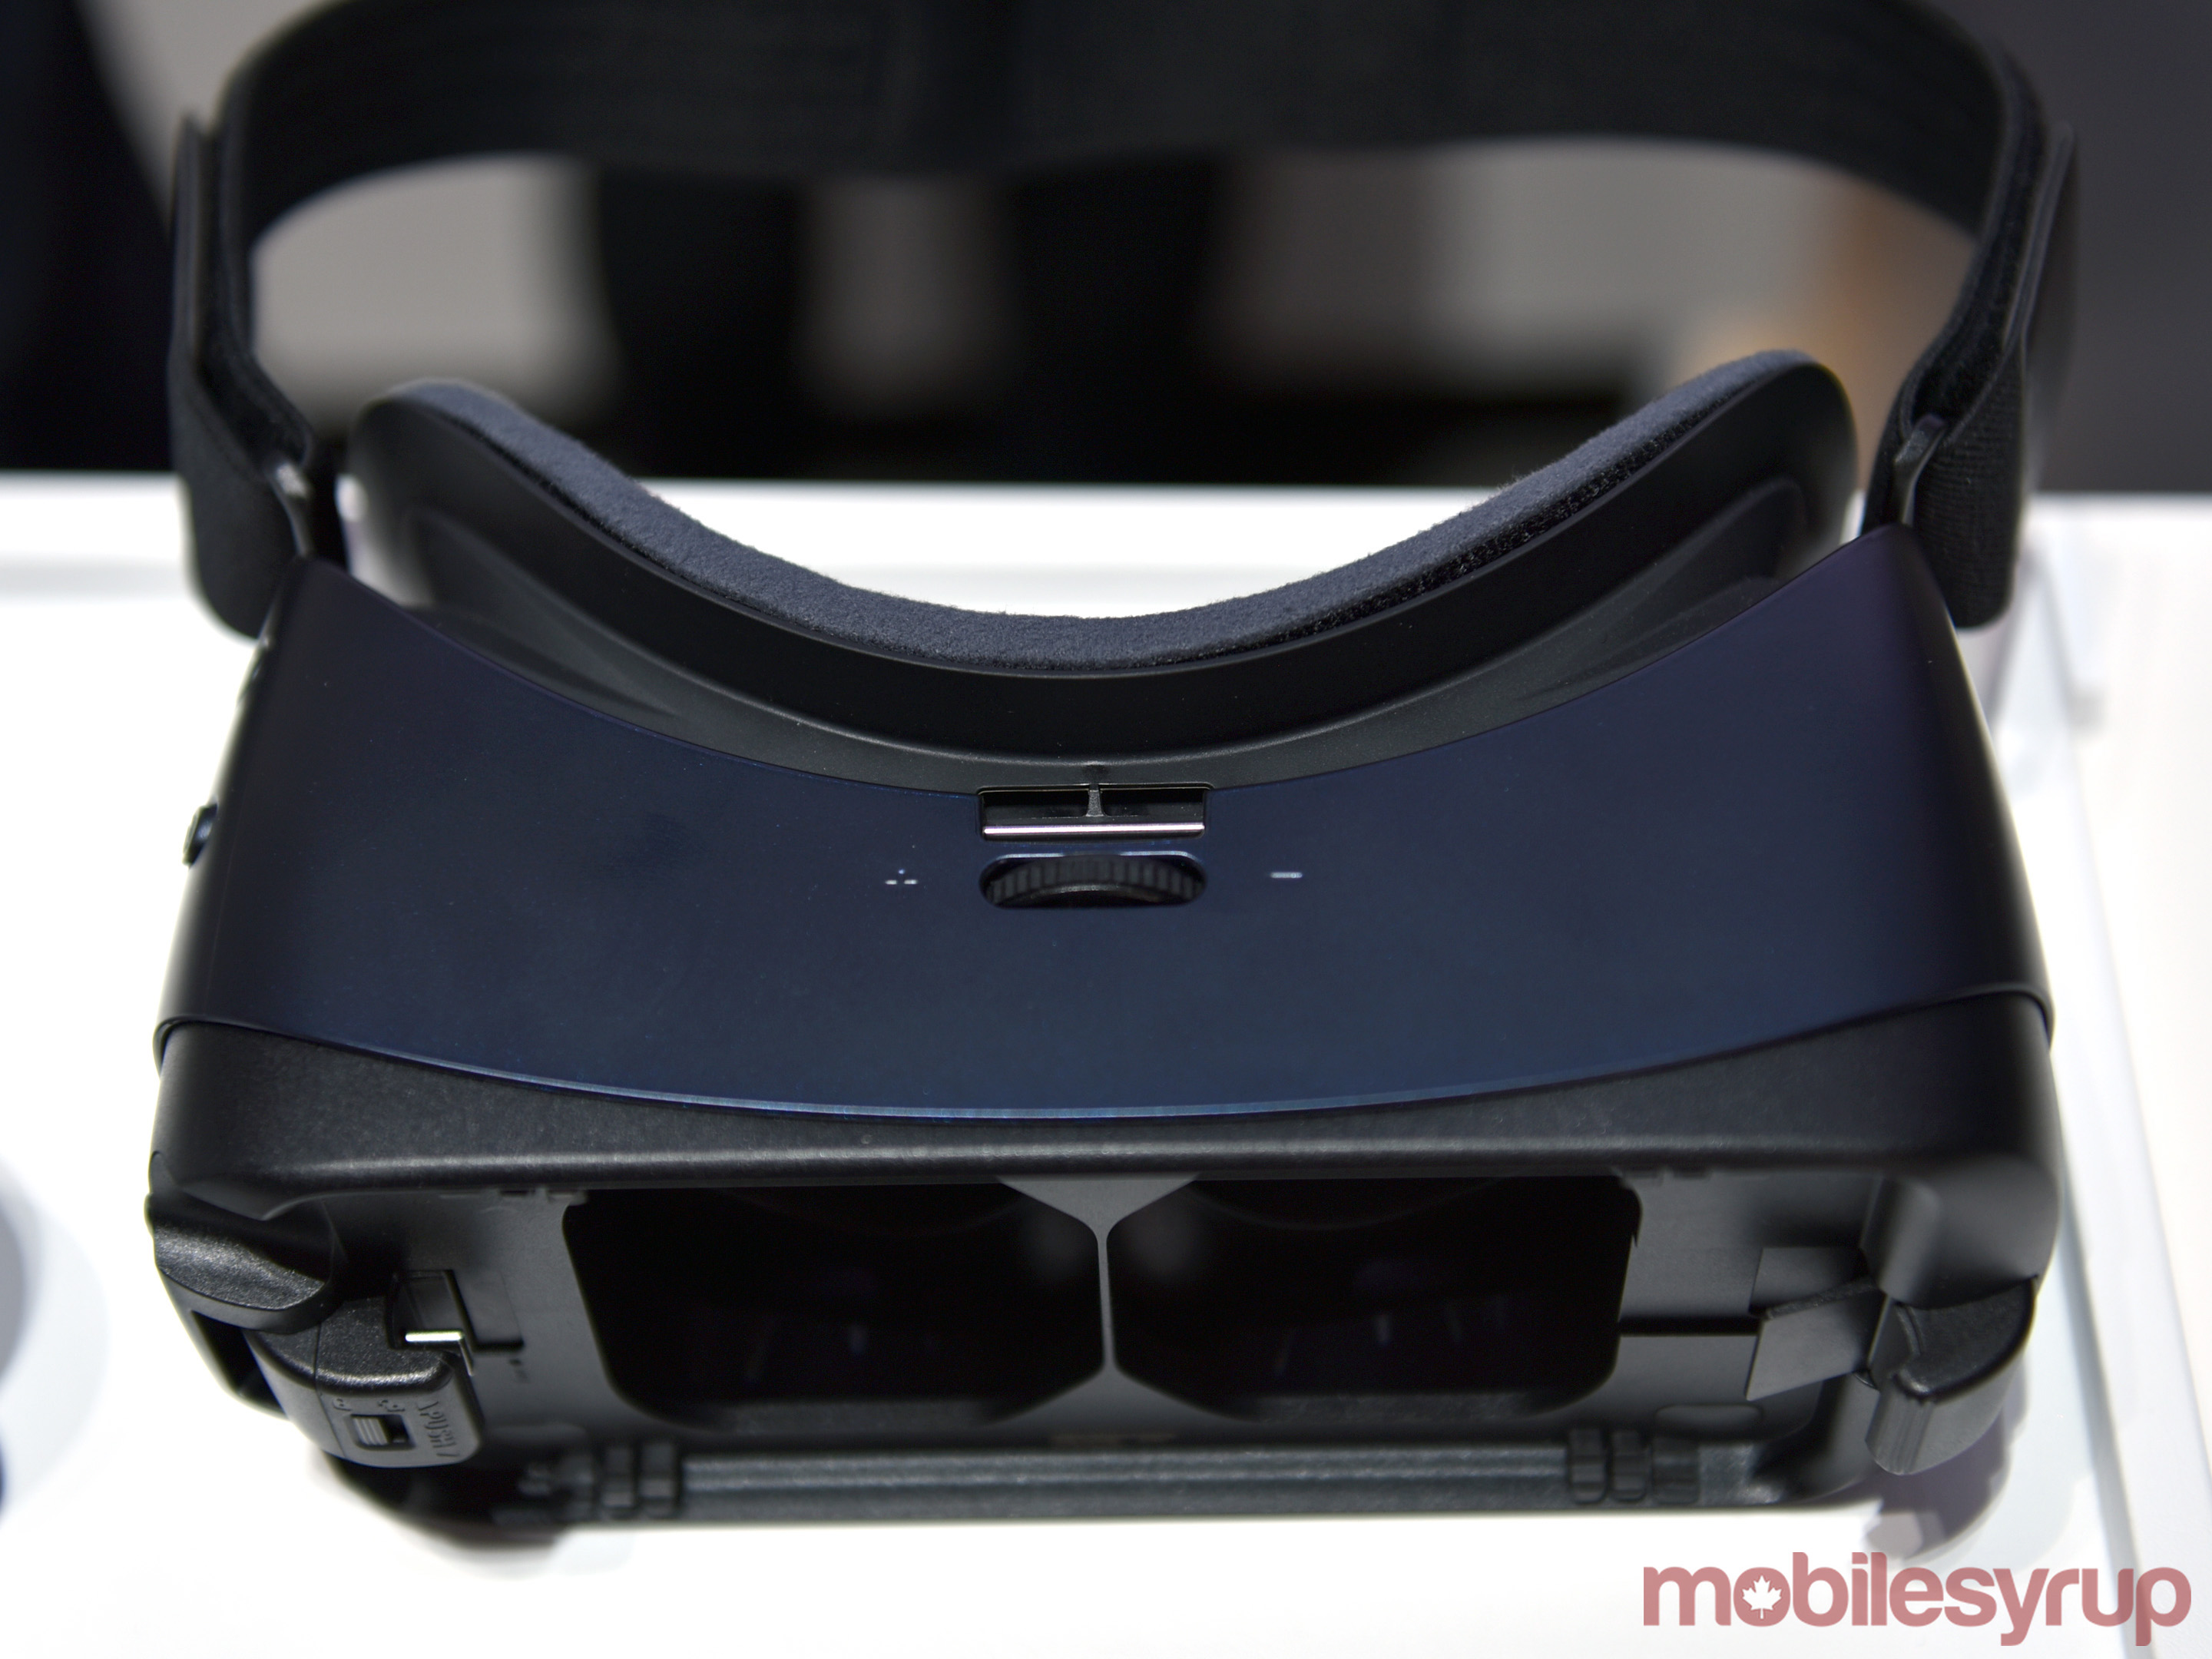 Samsung Gear VR Hands-on: A minor facelift | MobileSyrup